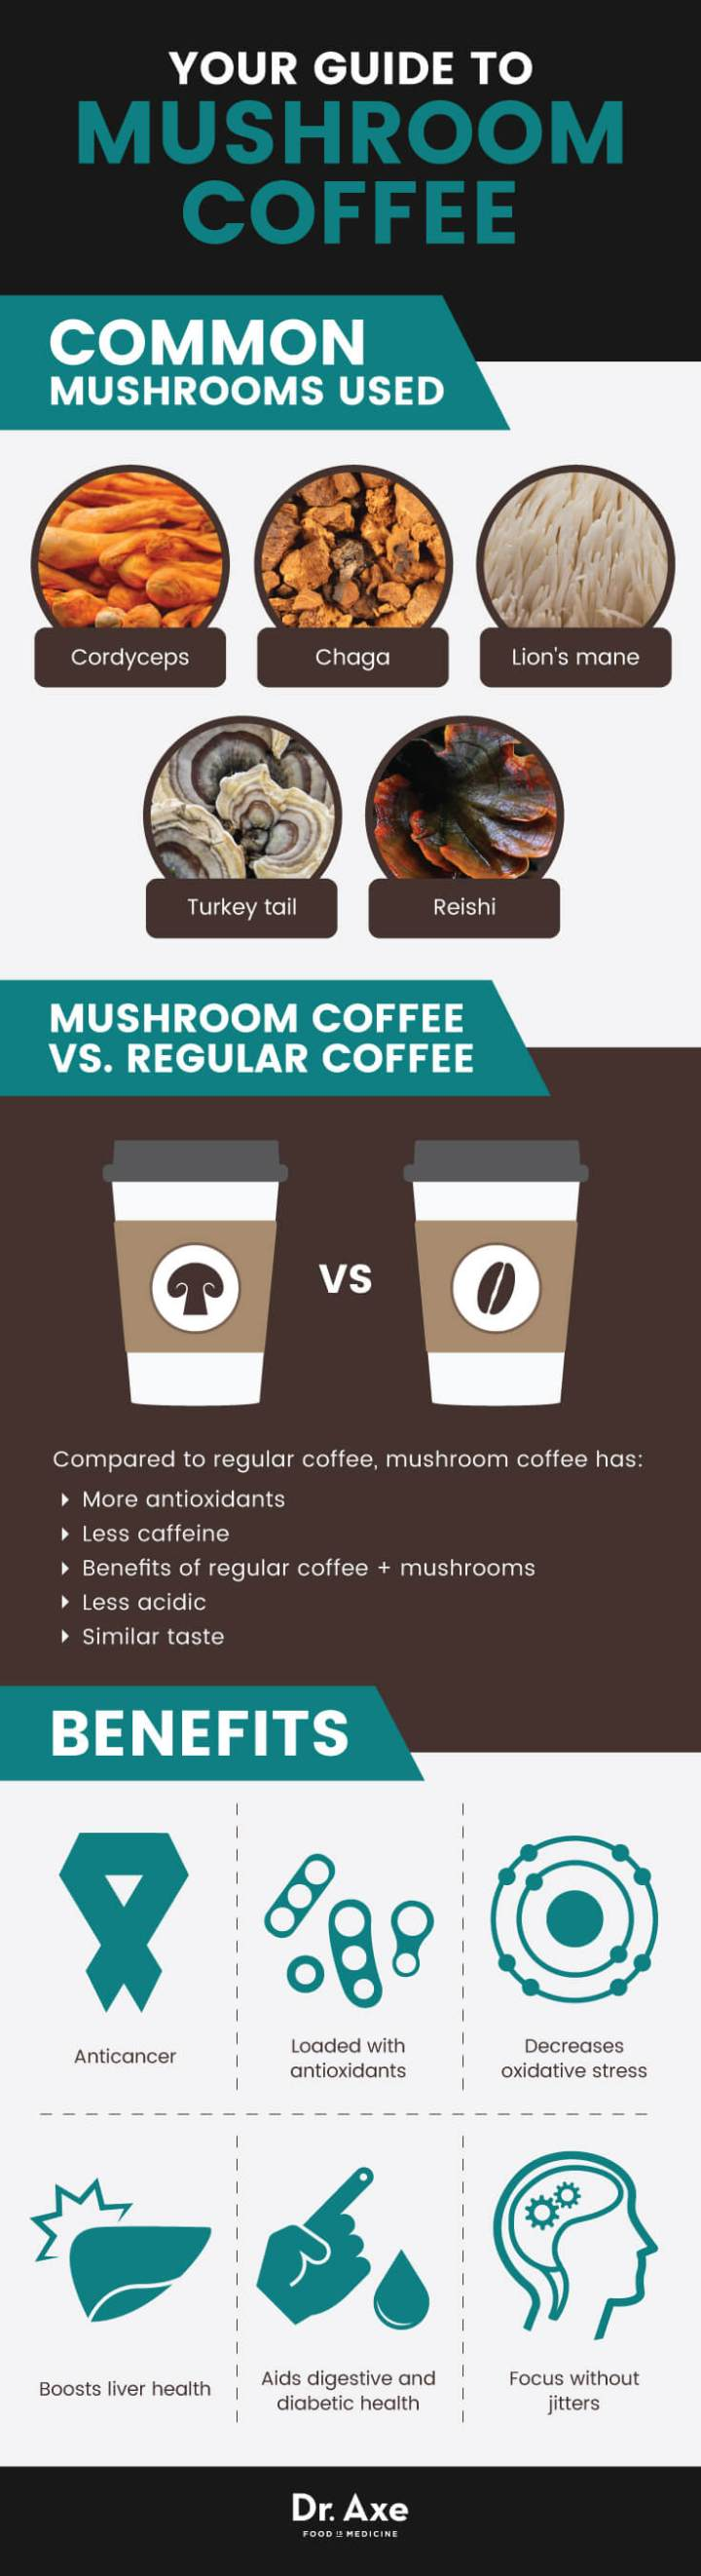 Your guide to mushroom coffee - Dr. Axe